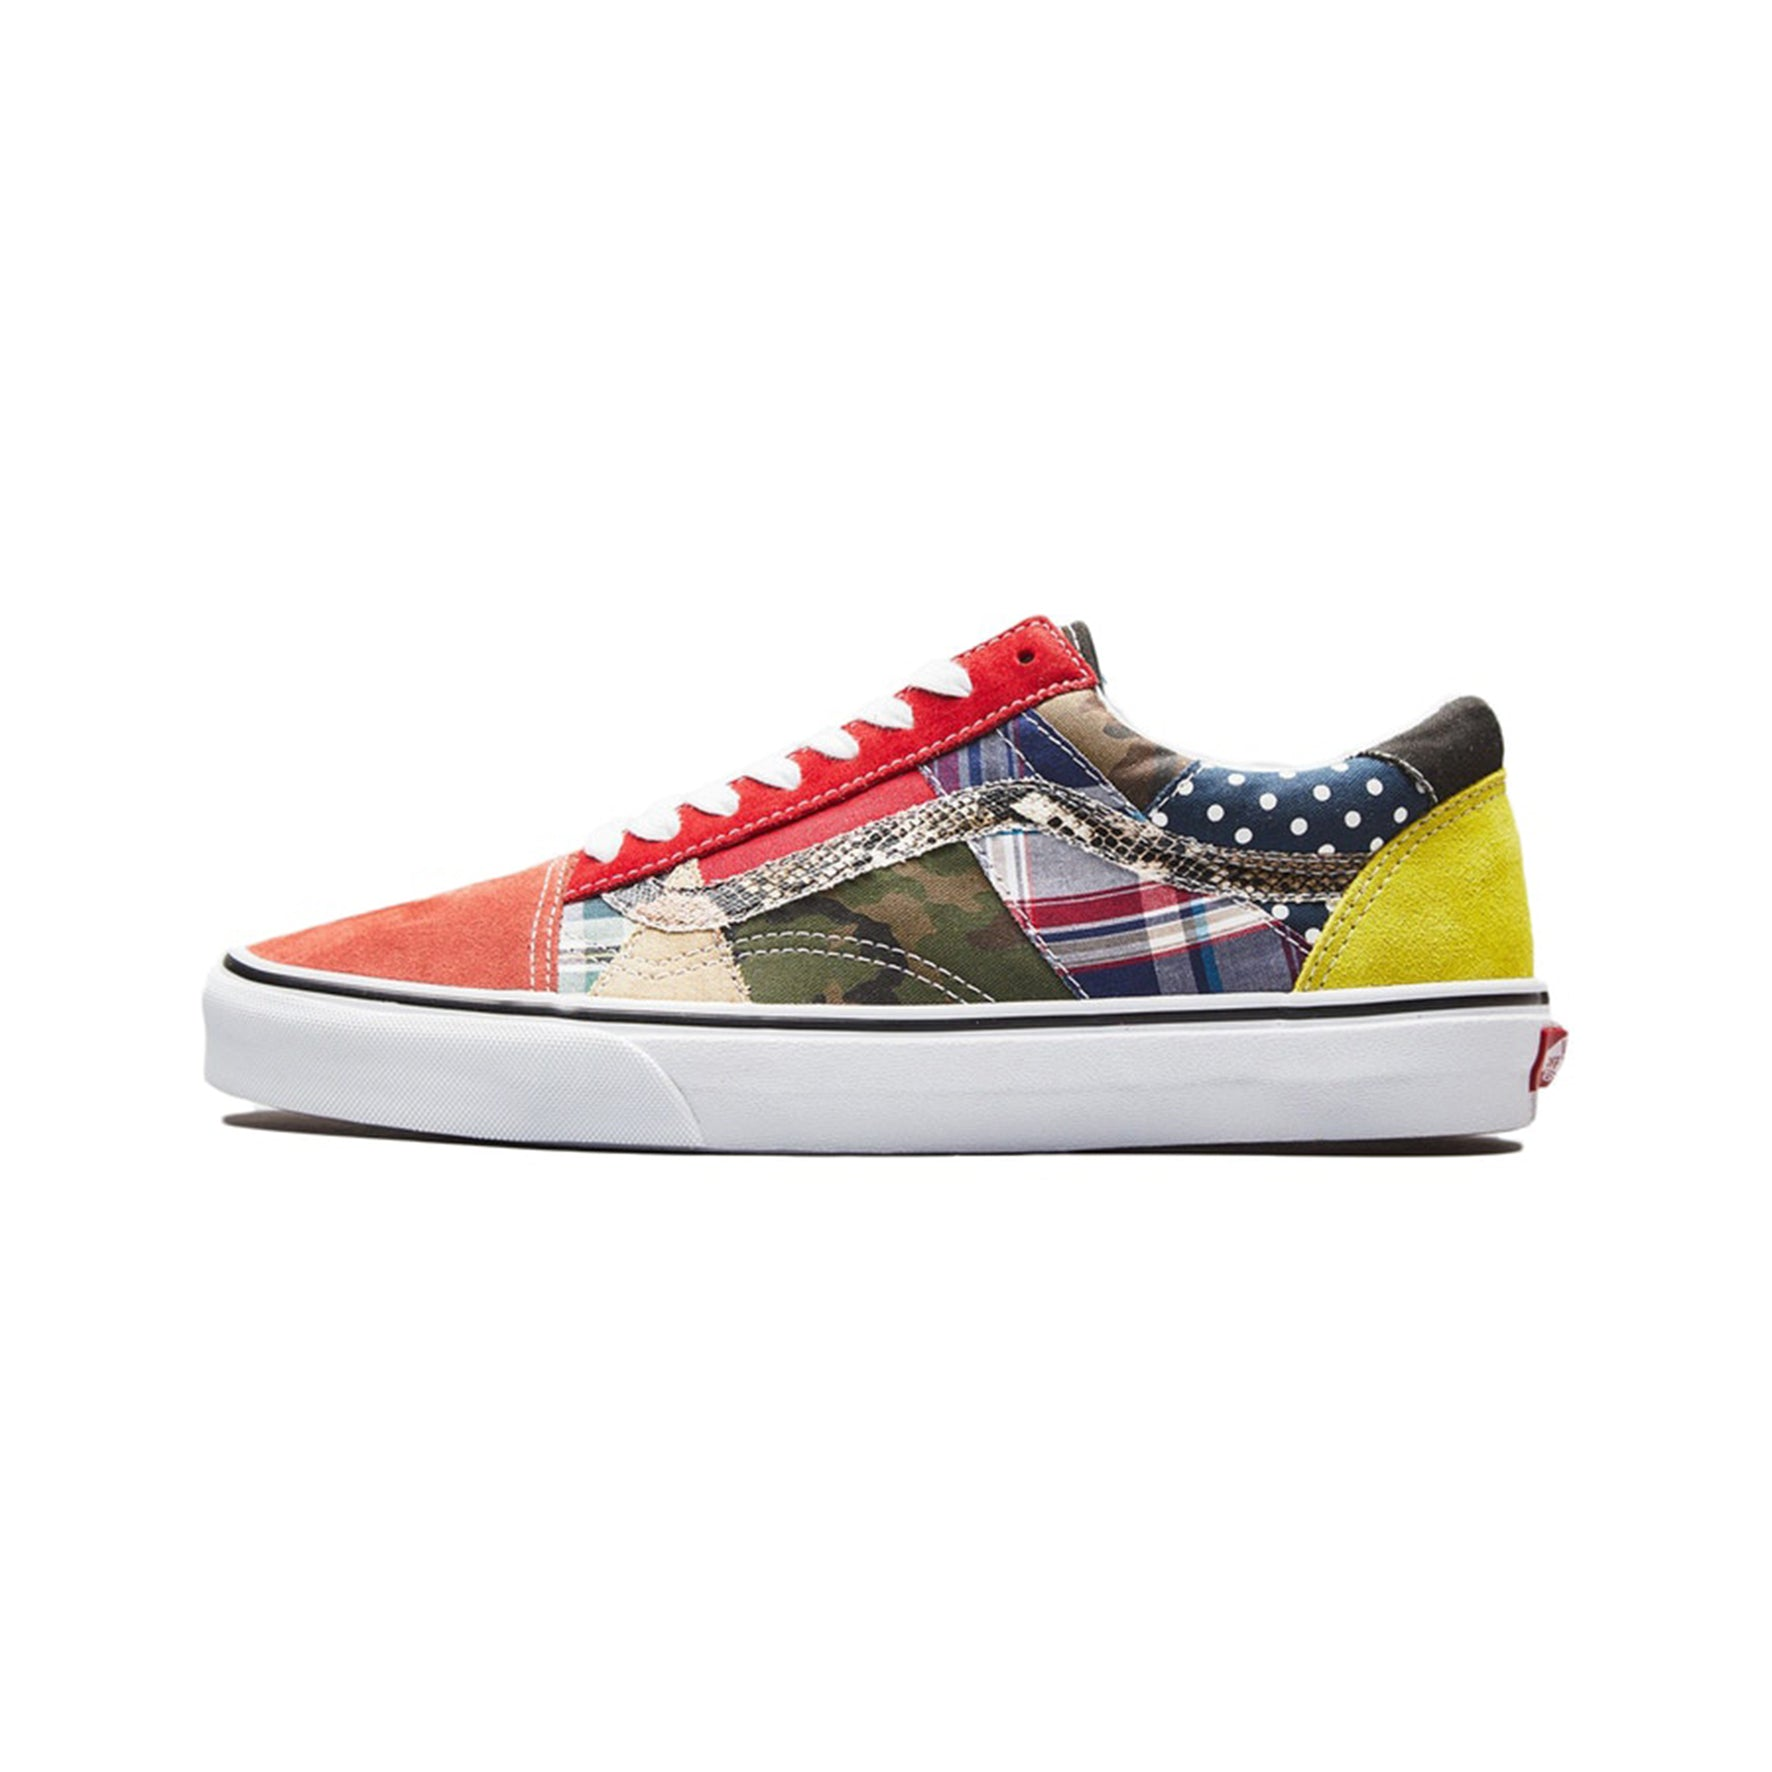 Vans Old Skool Patchwork Factory Floor - VN0A38G22BF - Sneakersfromfrance